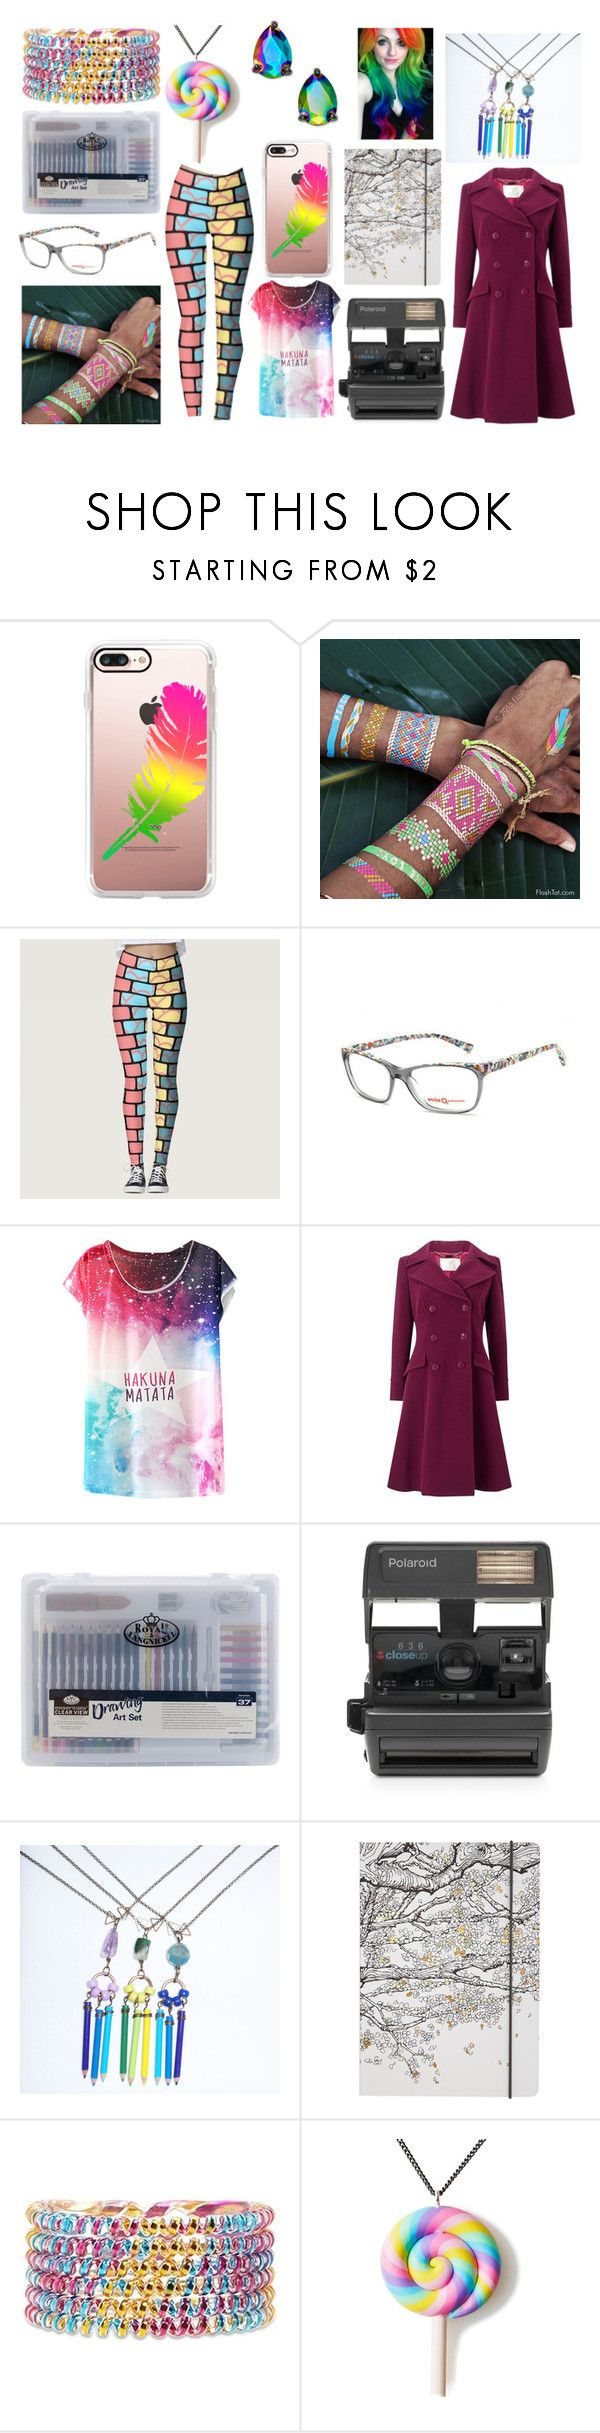 Tessa Winter Outfit by ariagrimesqoutev on Polyvore featuring beauty, Flash Tattoos, Casetify, Forever 21, Etnia Barcelona, Kate Spade, Jacques Vert, Impossible and Go Stationery